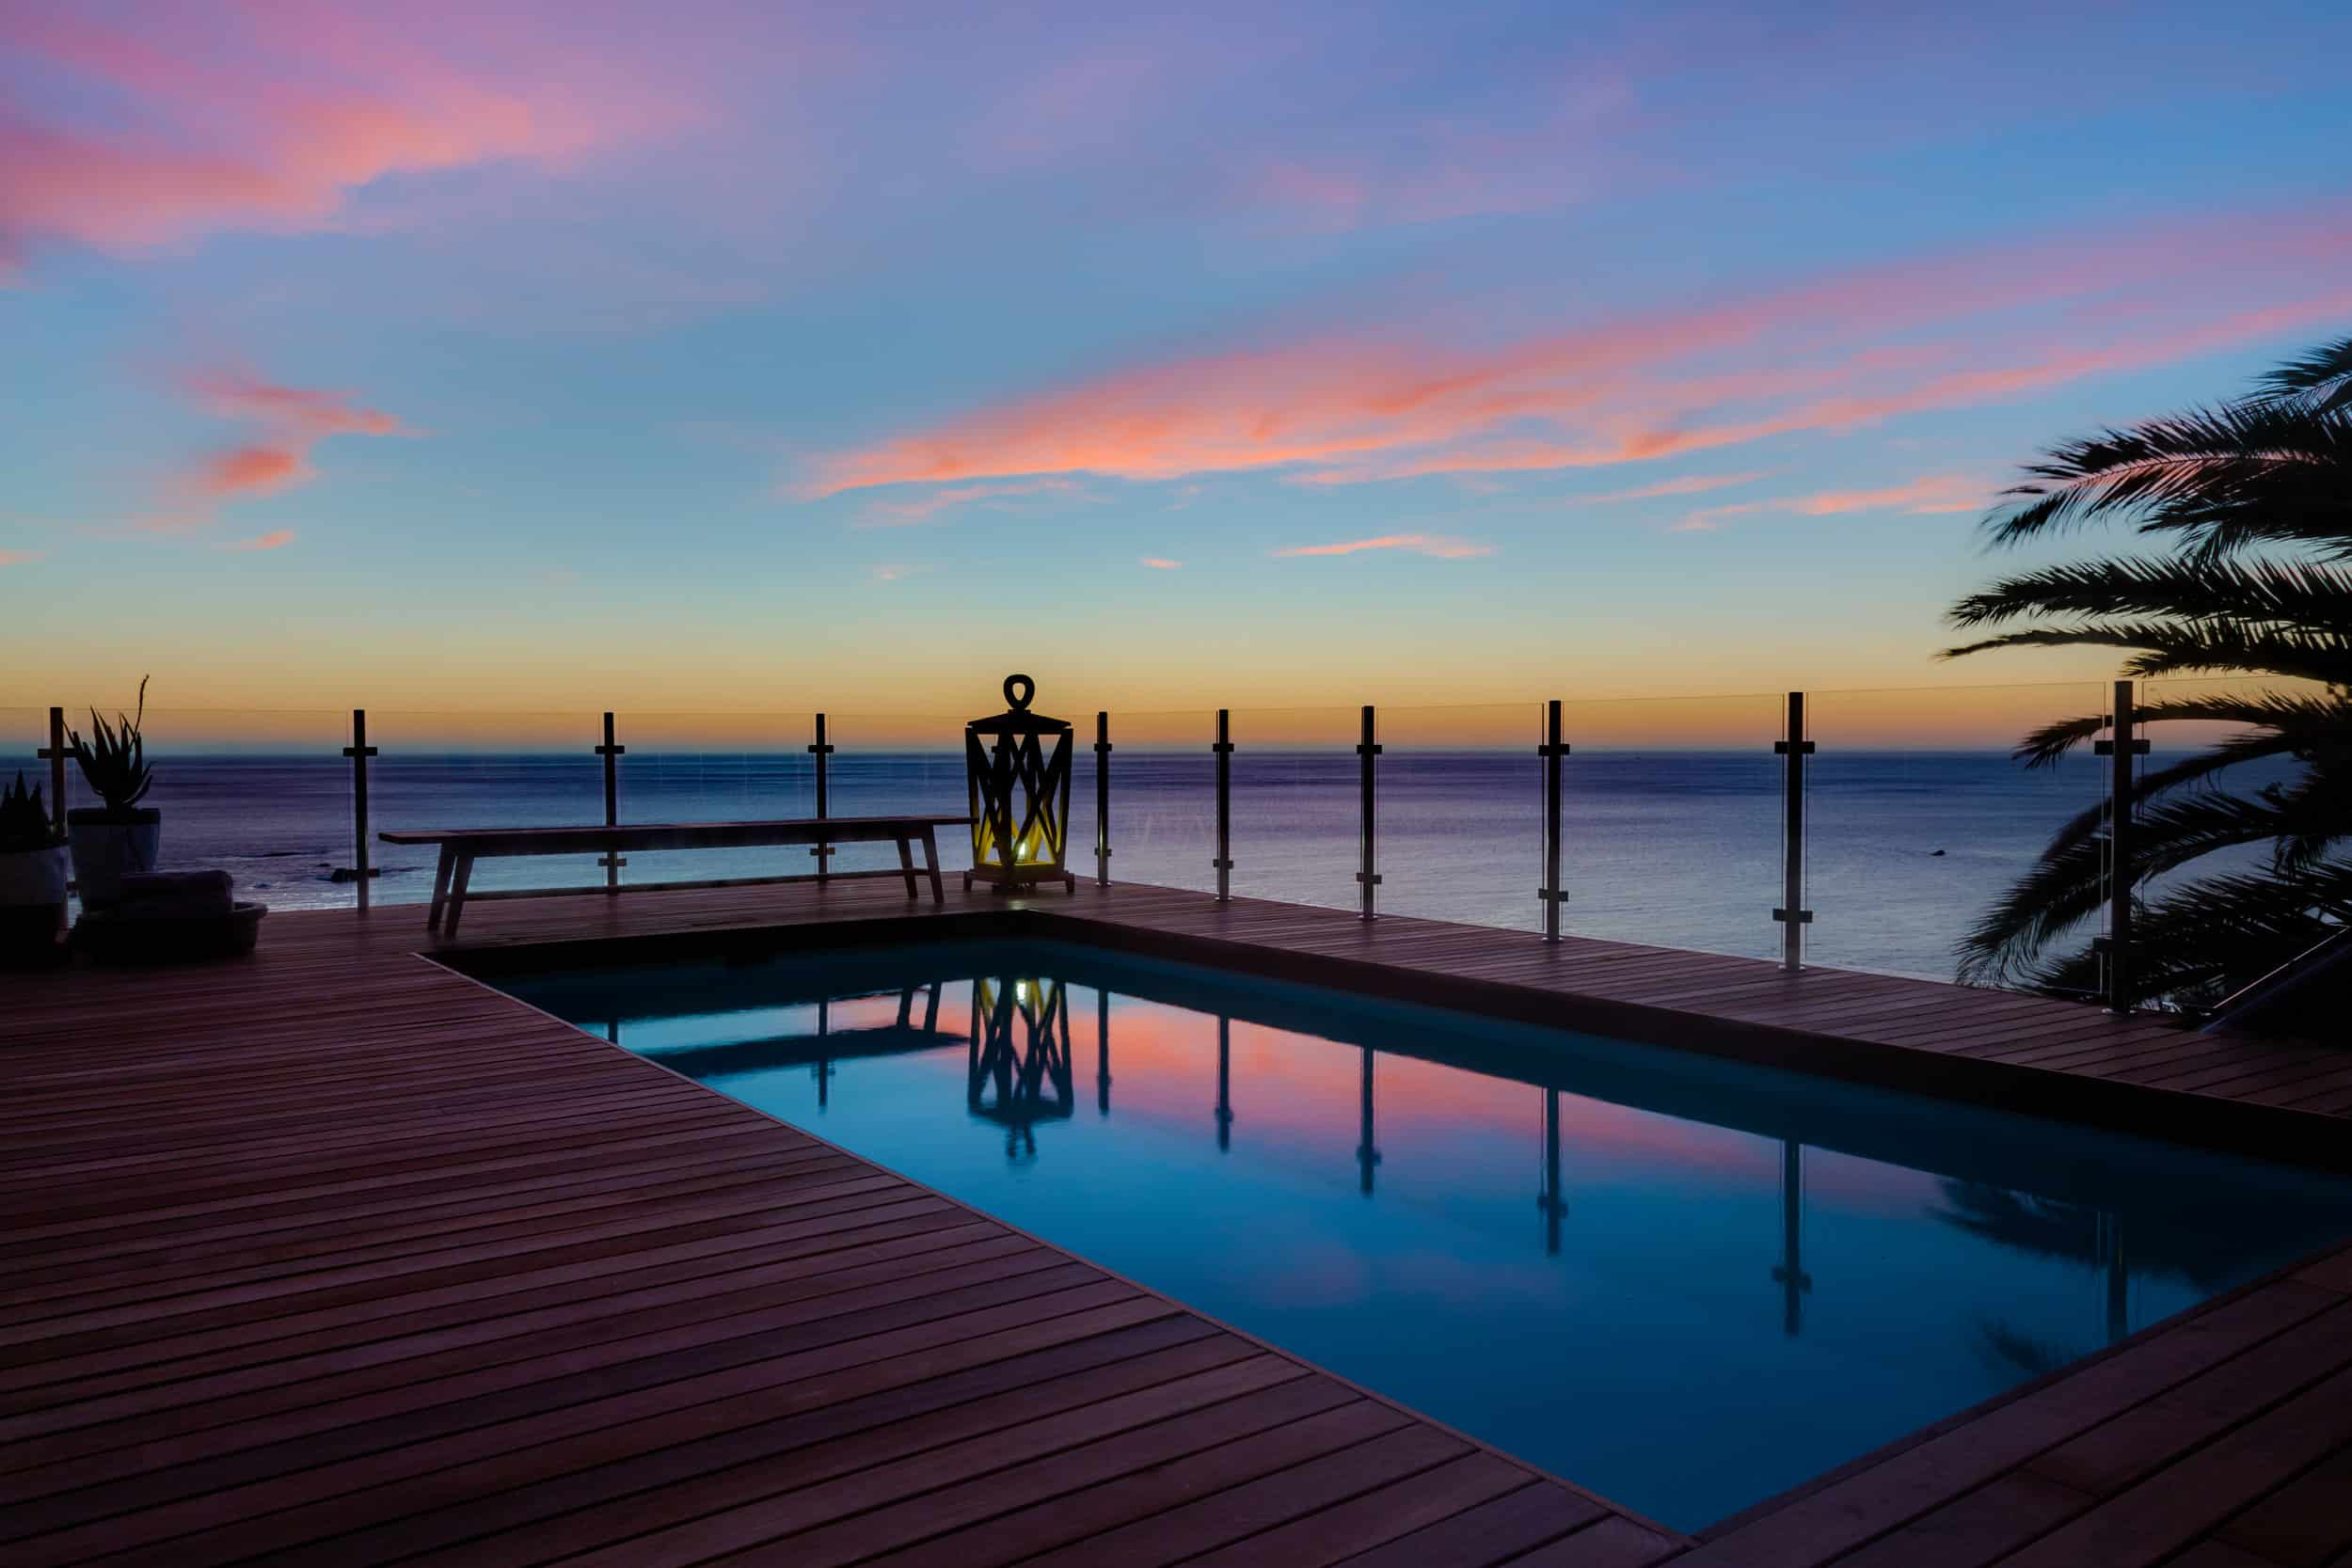 pool view during sunset at Cape View Clifton South Africa